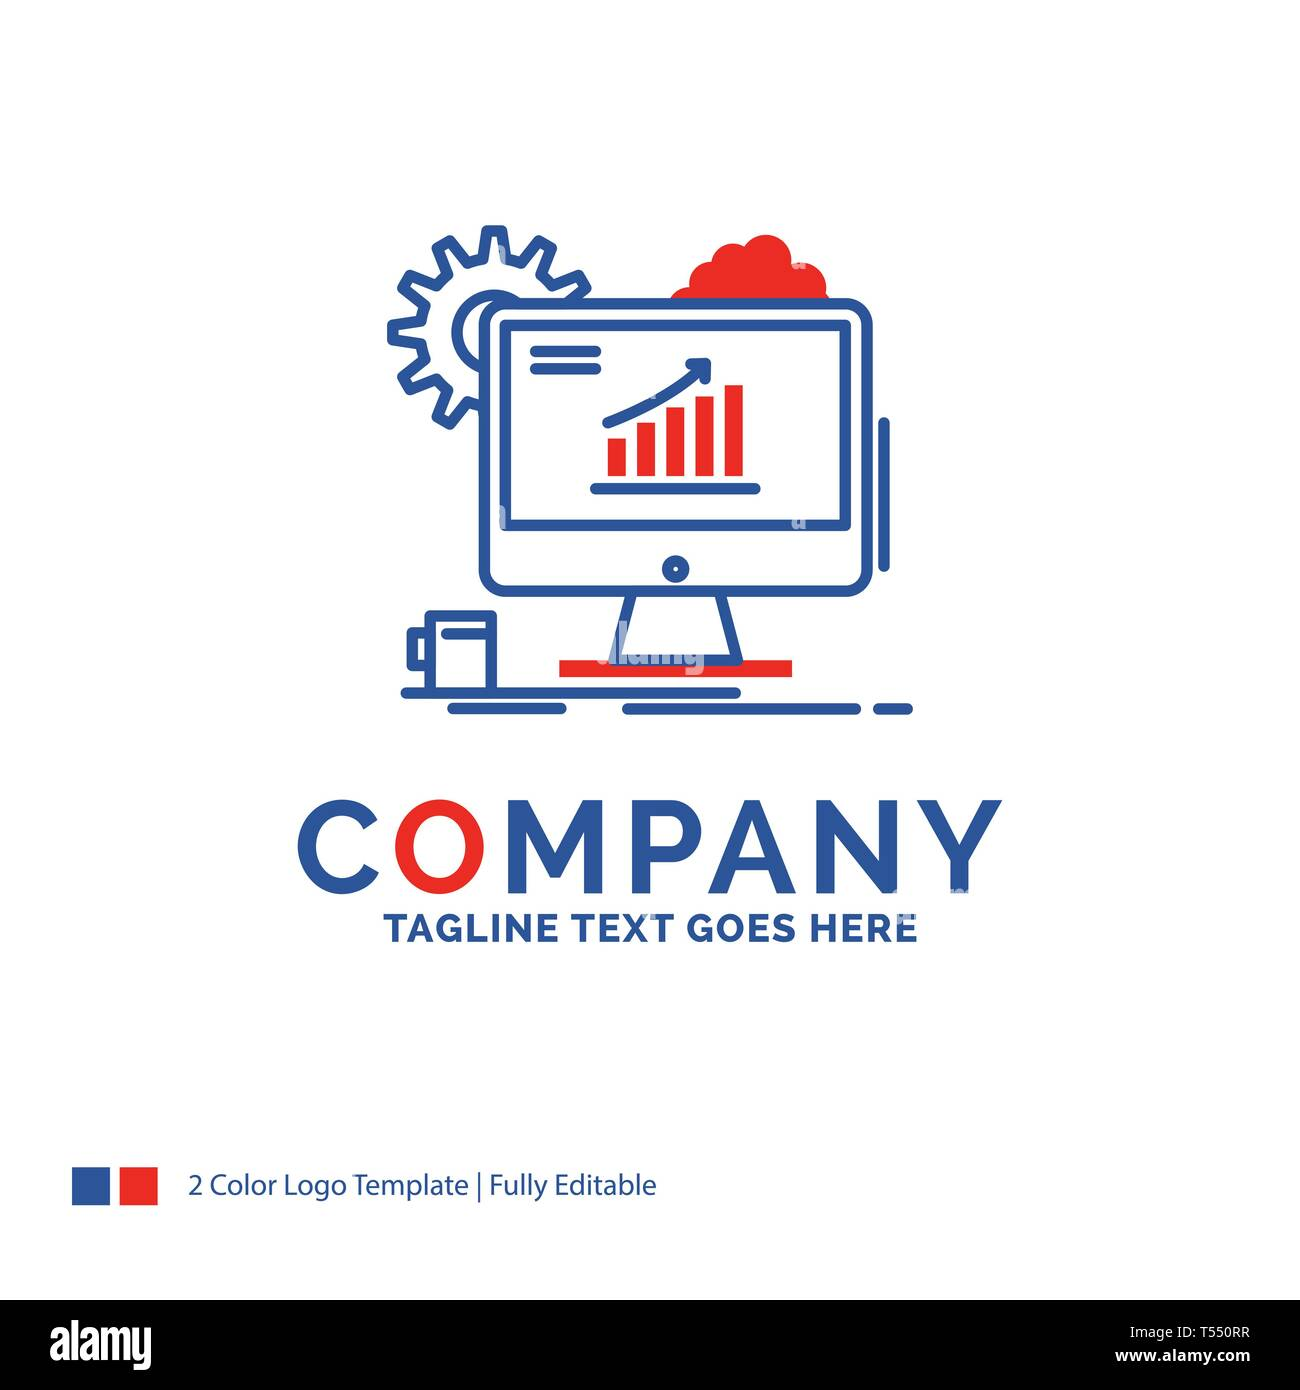 Company Name Logo Design For Analytics Chart Seo Web Setting Blue And Red Brand Name Design With Place For Tagline Abstract Creative Logo Templa Stock Vector Image Art Alamy